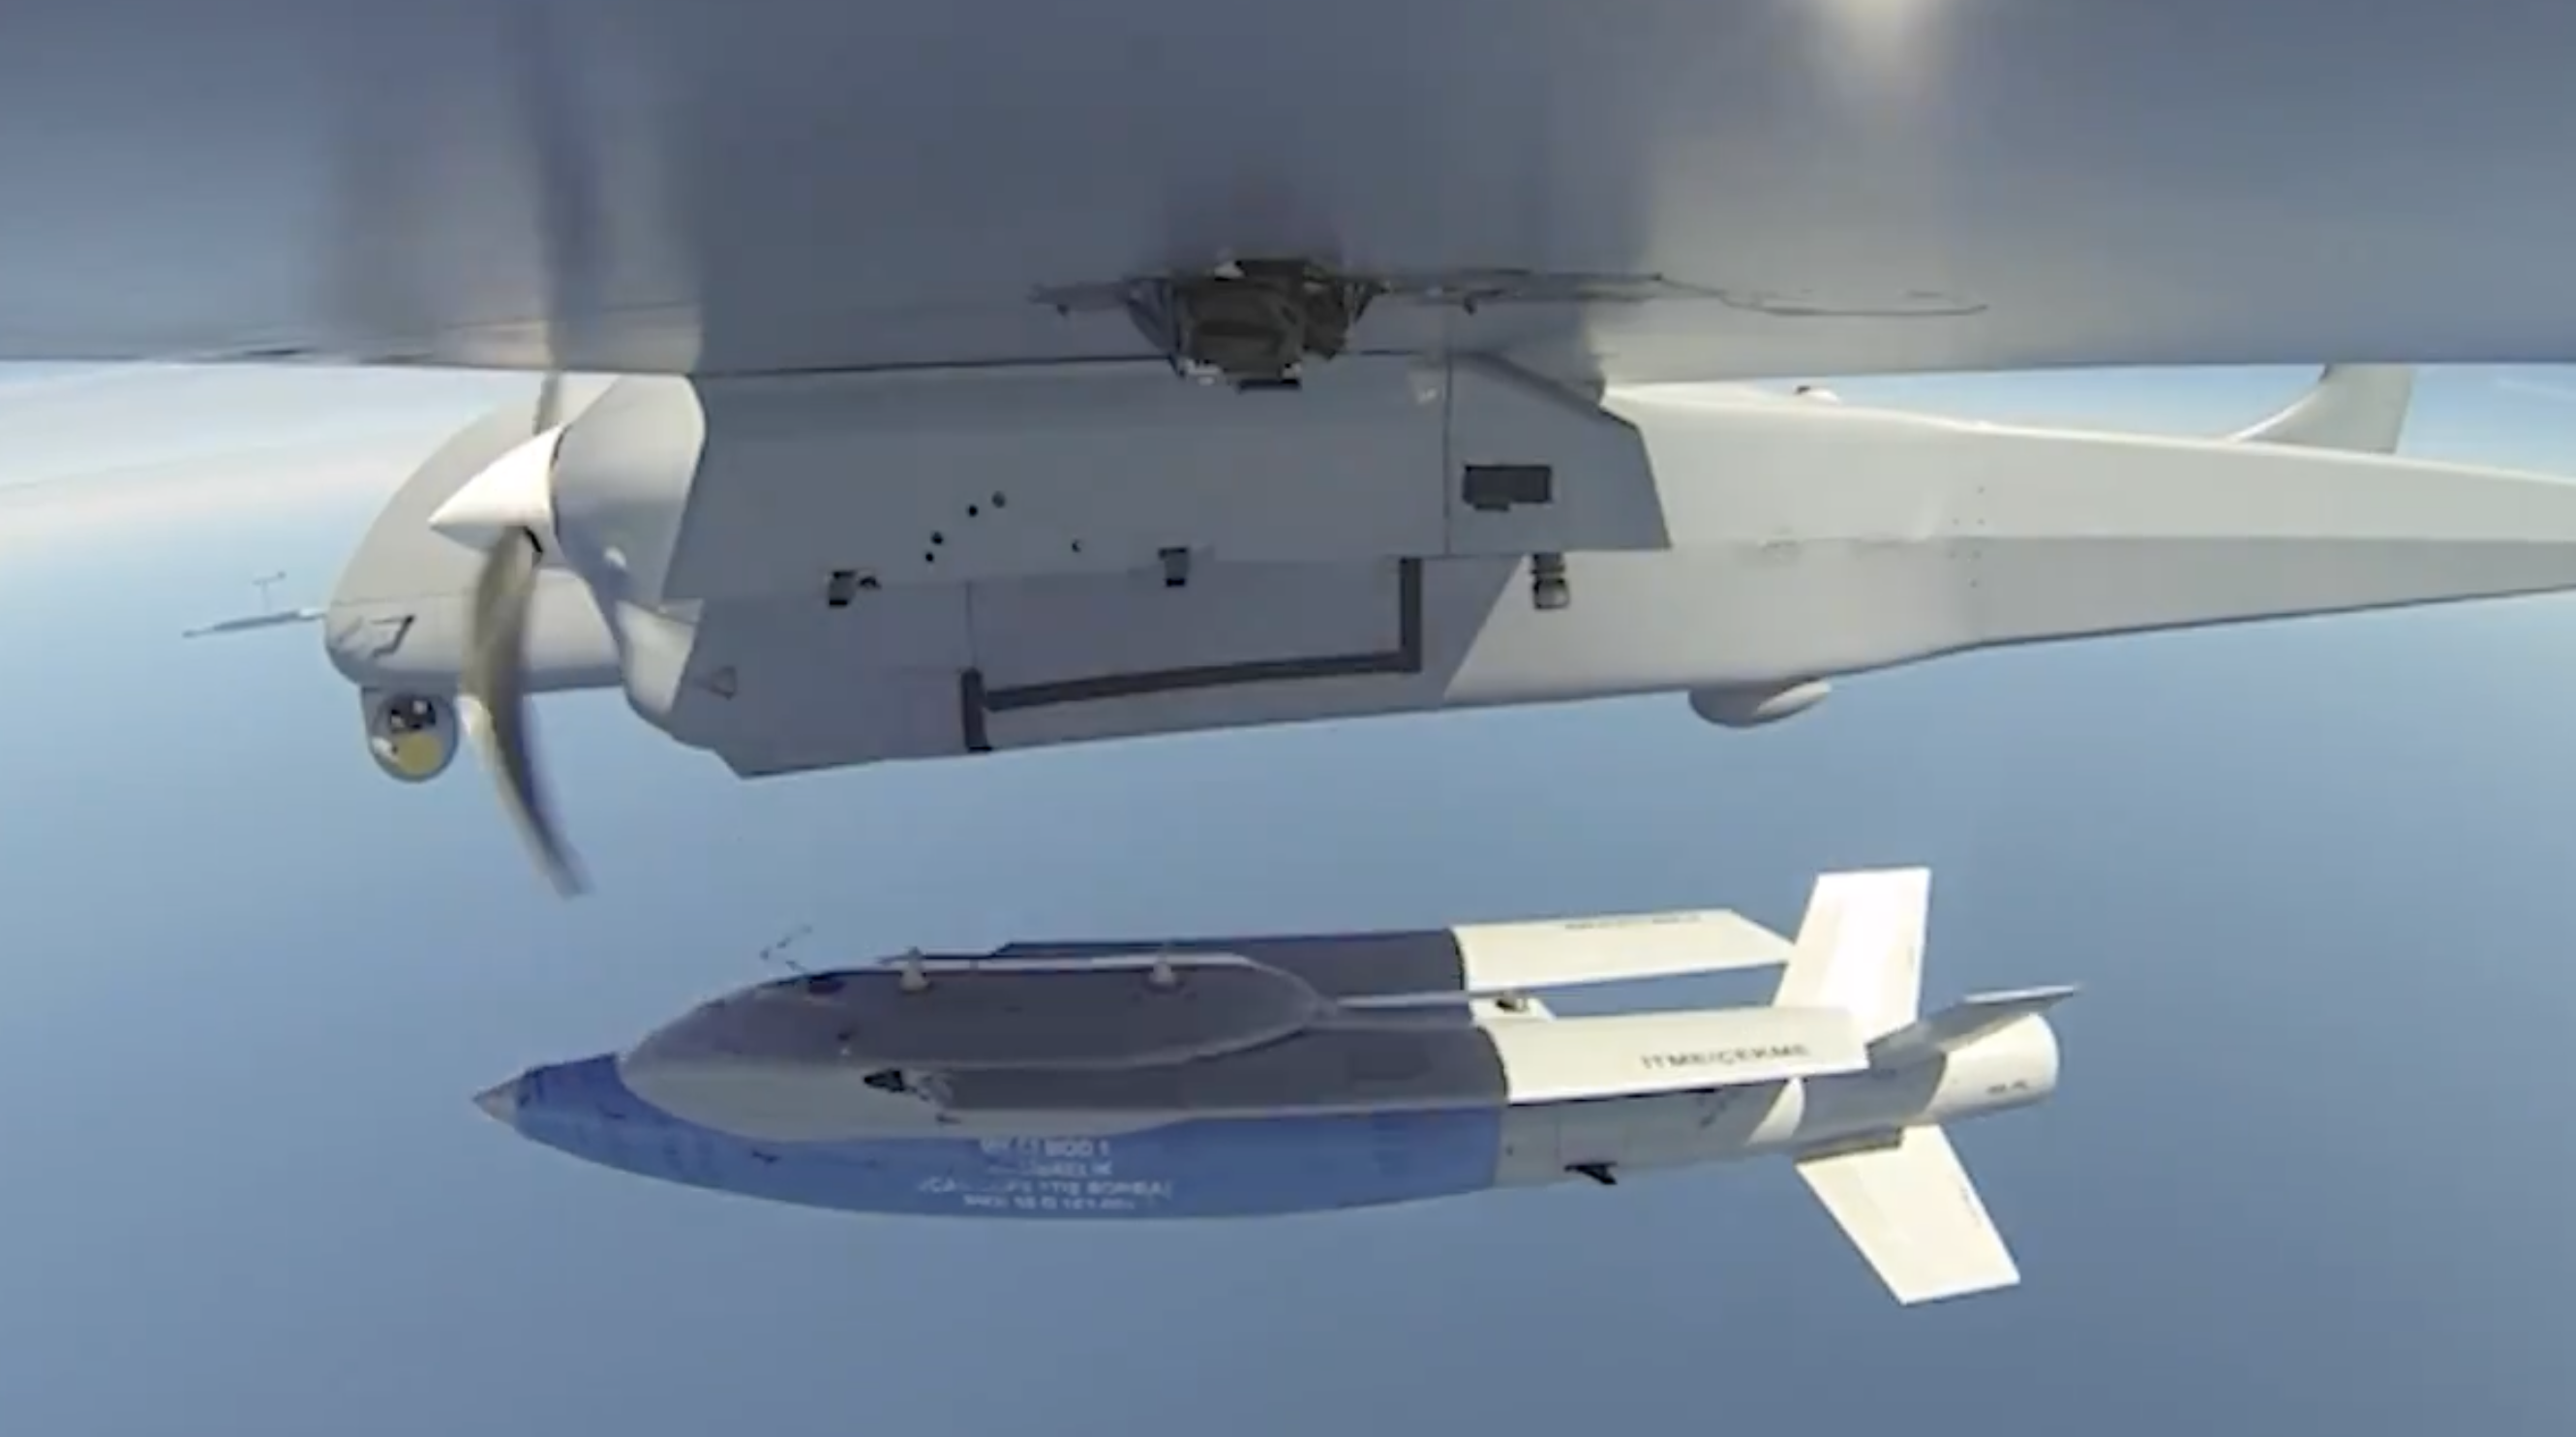 Turkey Now Has A High-Speed Missile-Like Drone That's Launched From A Larger Drone